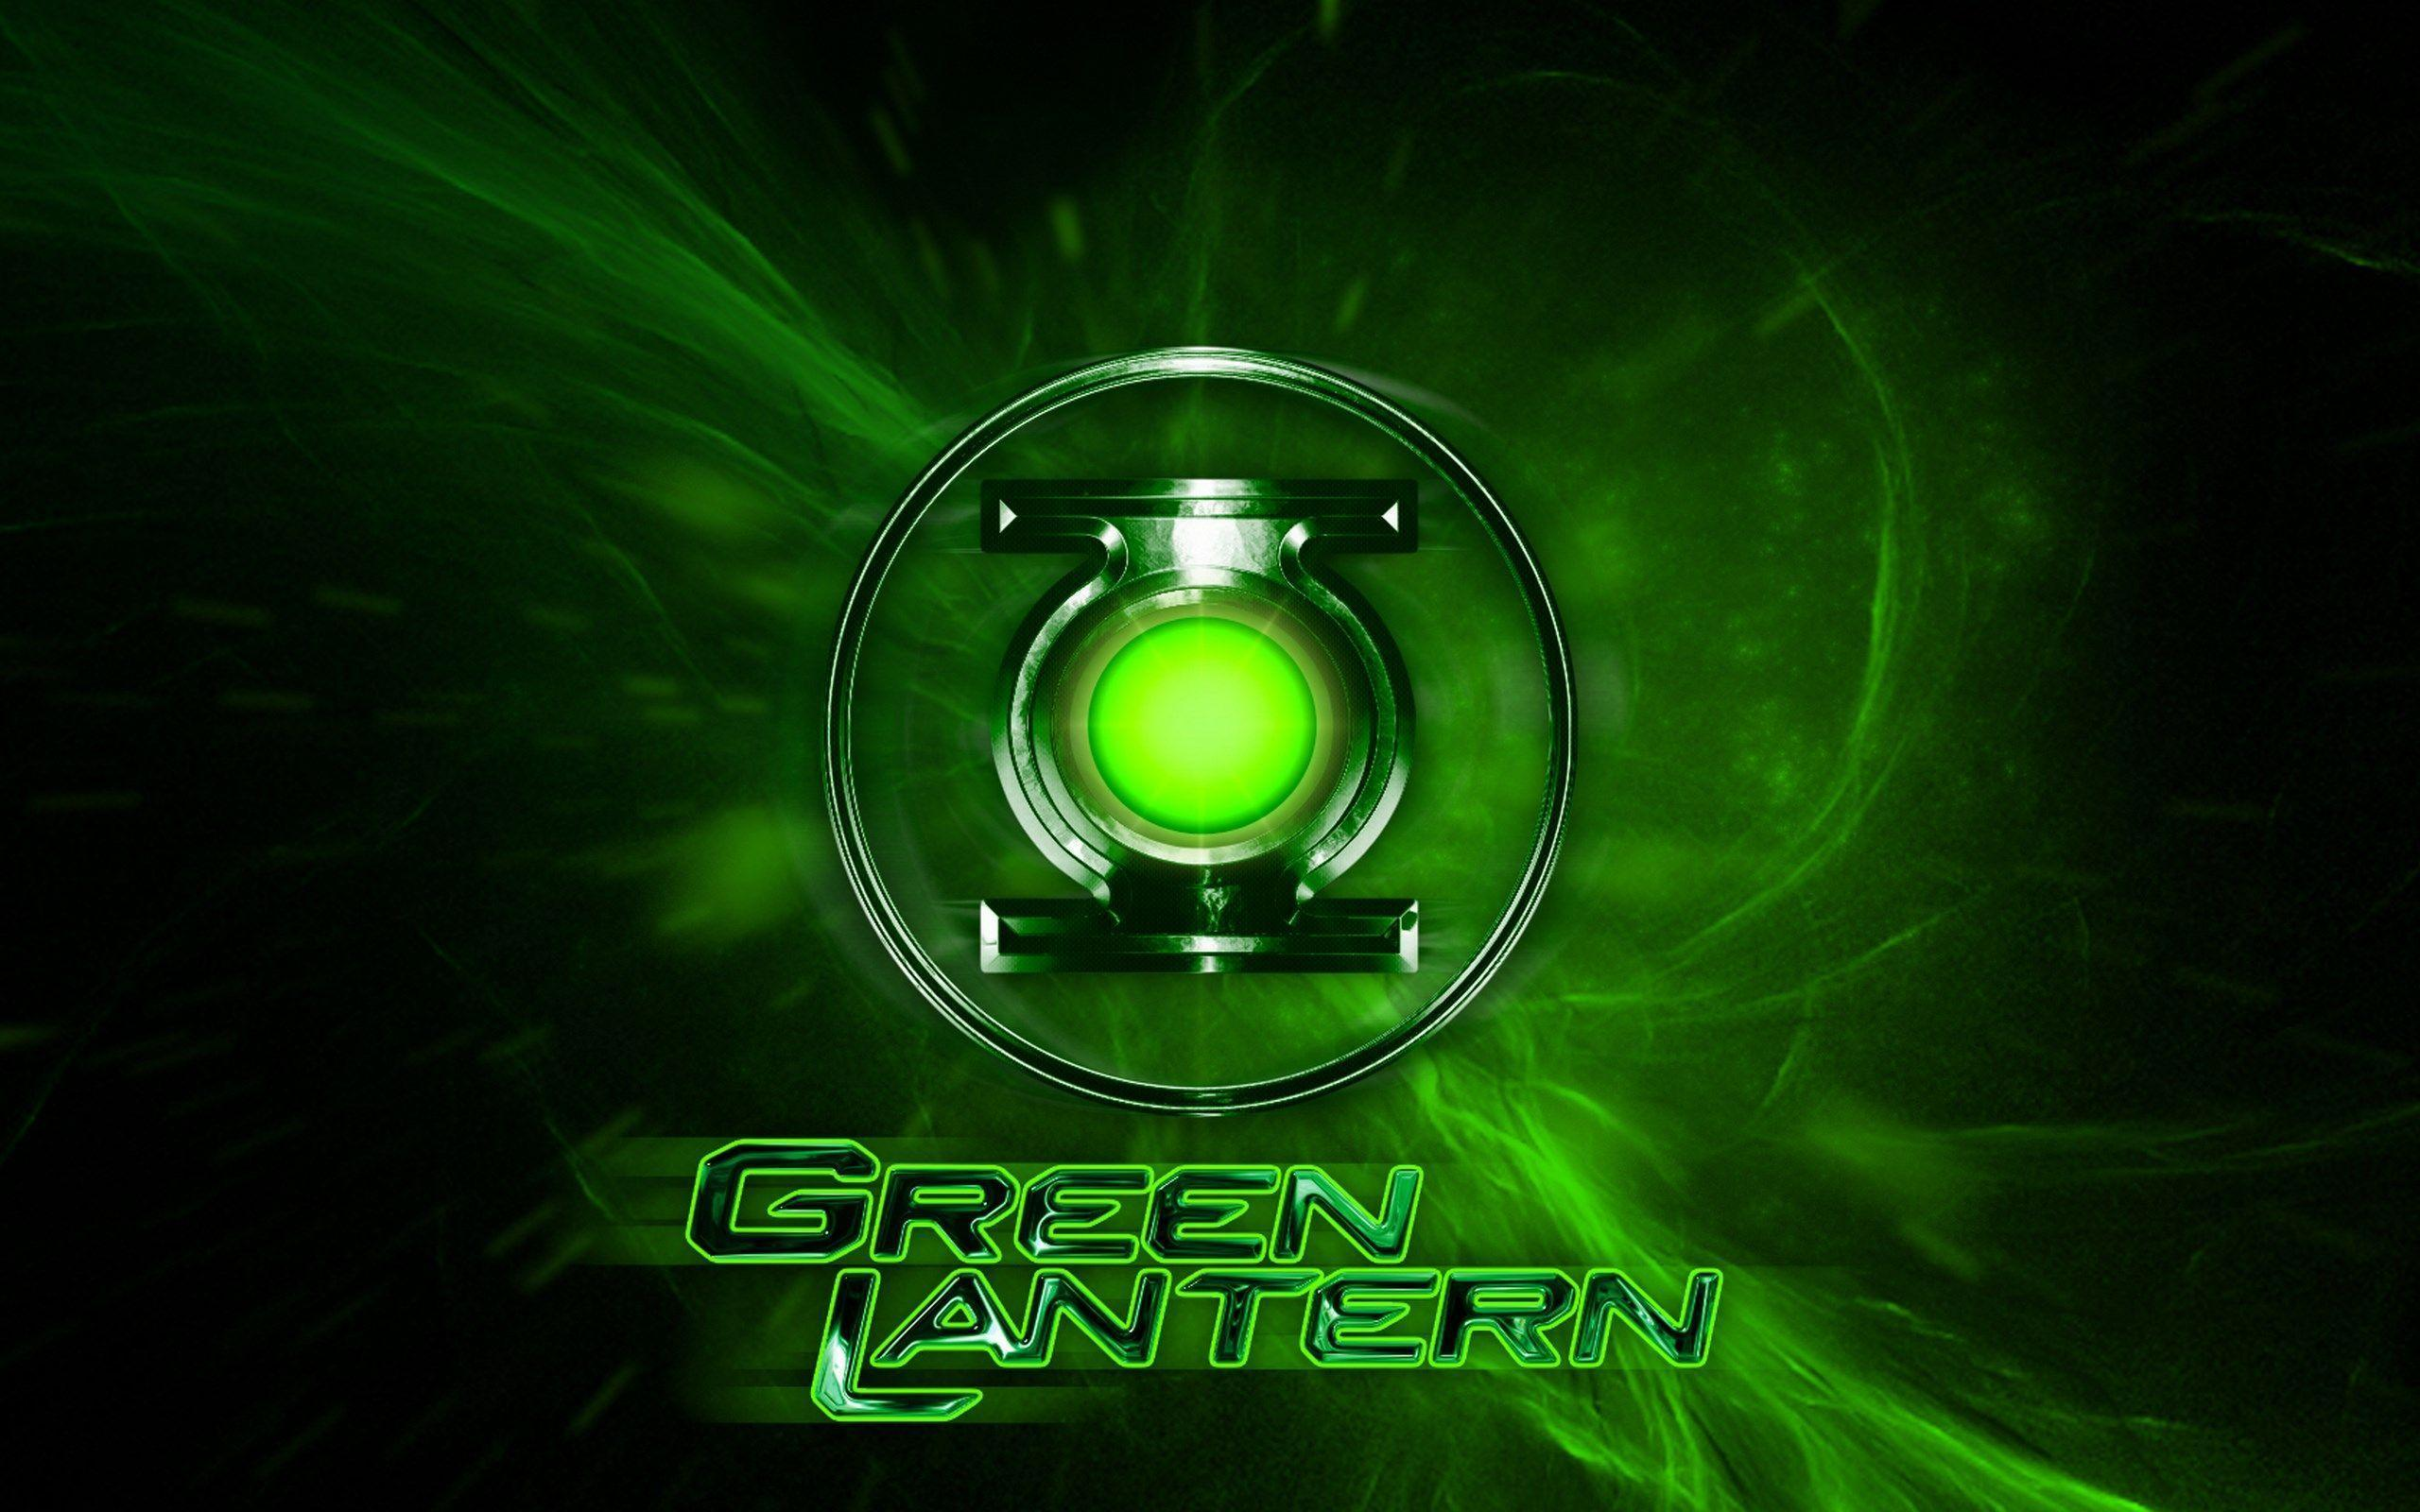 Green Lantern Wallpapers 2560x1600